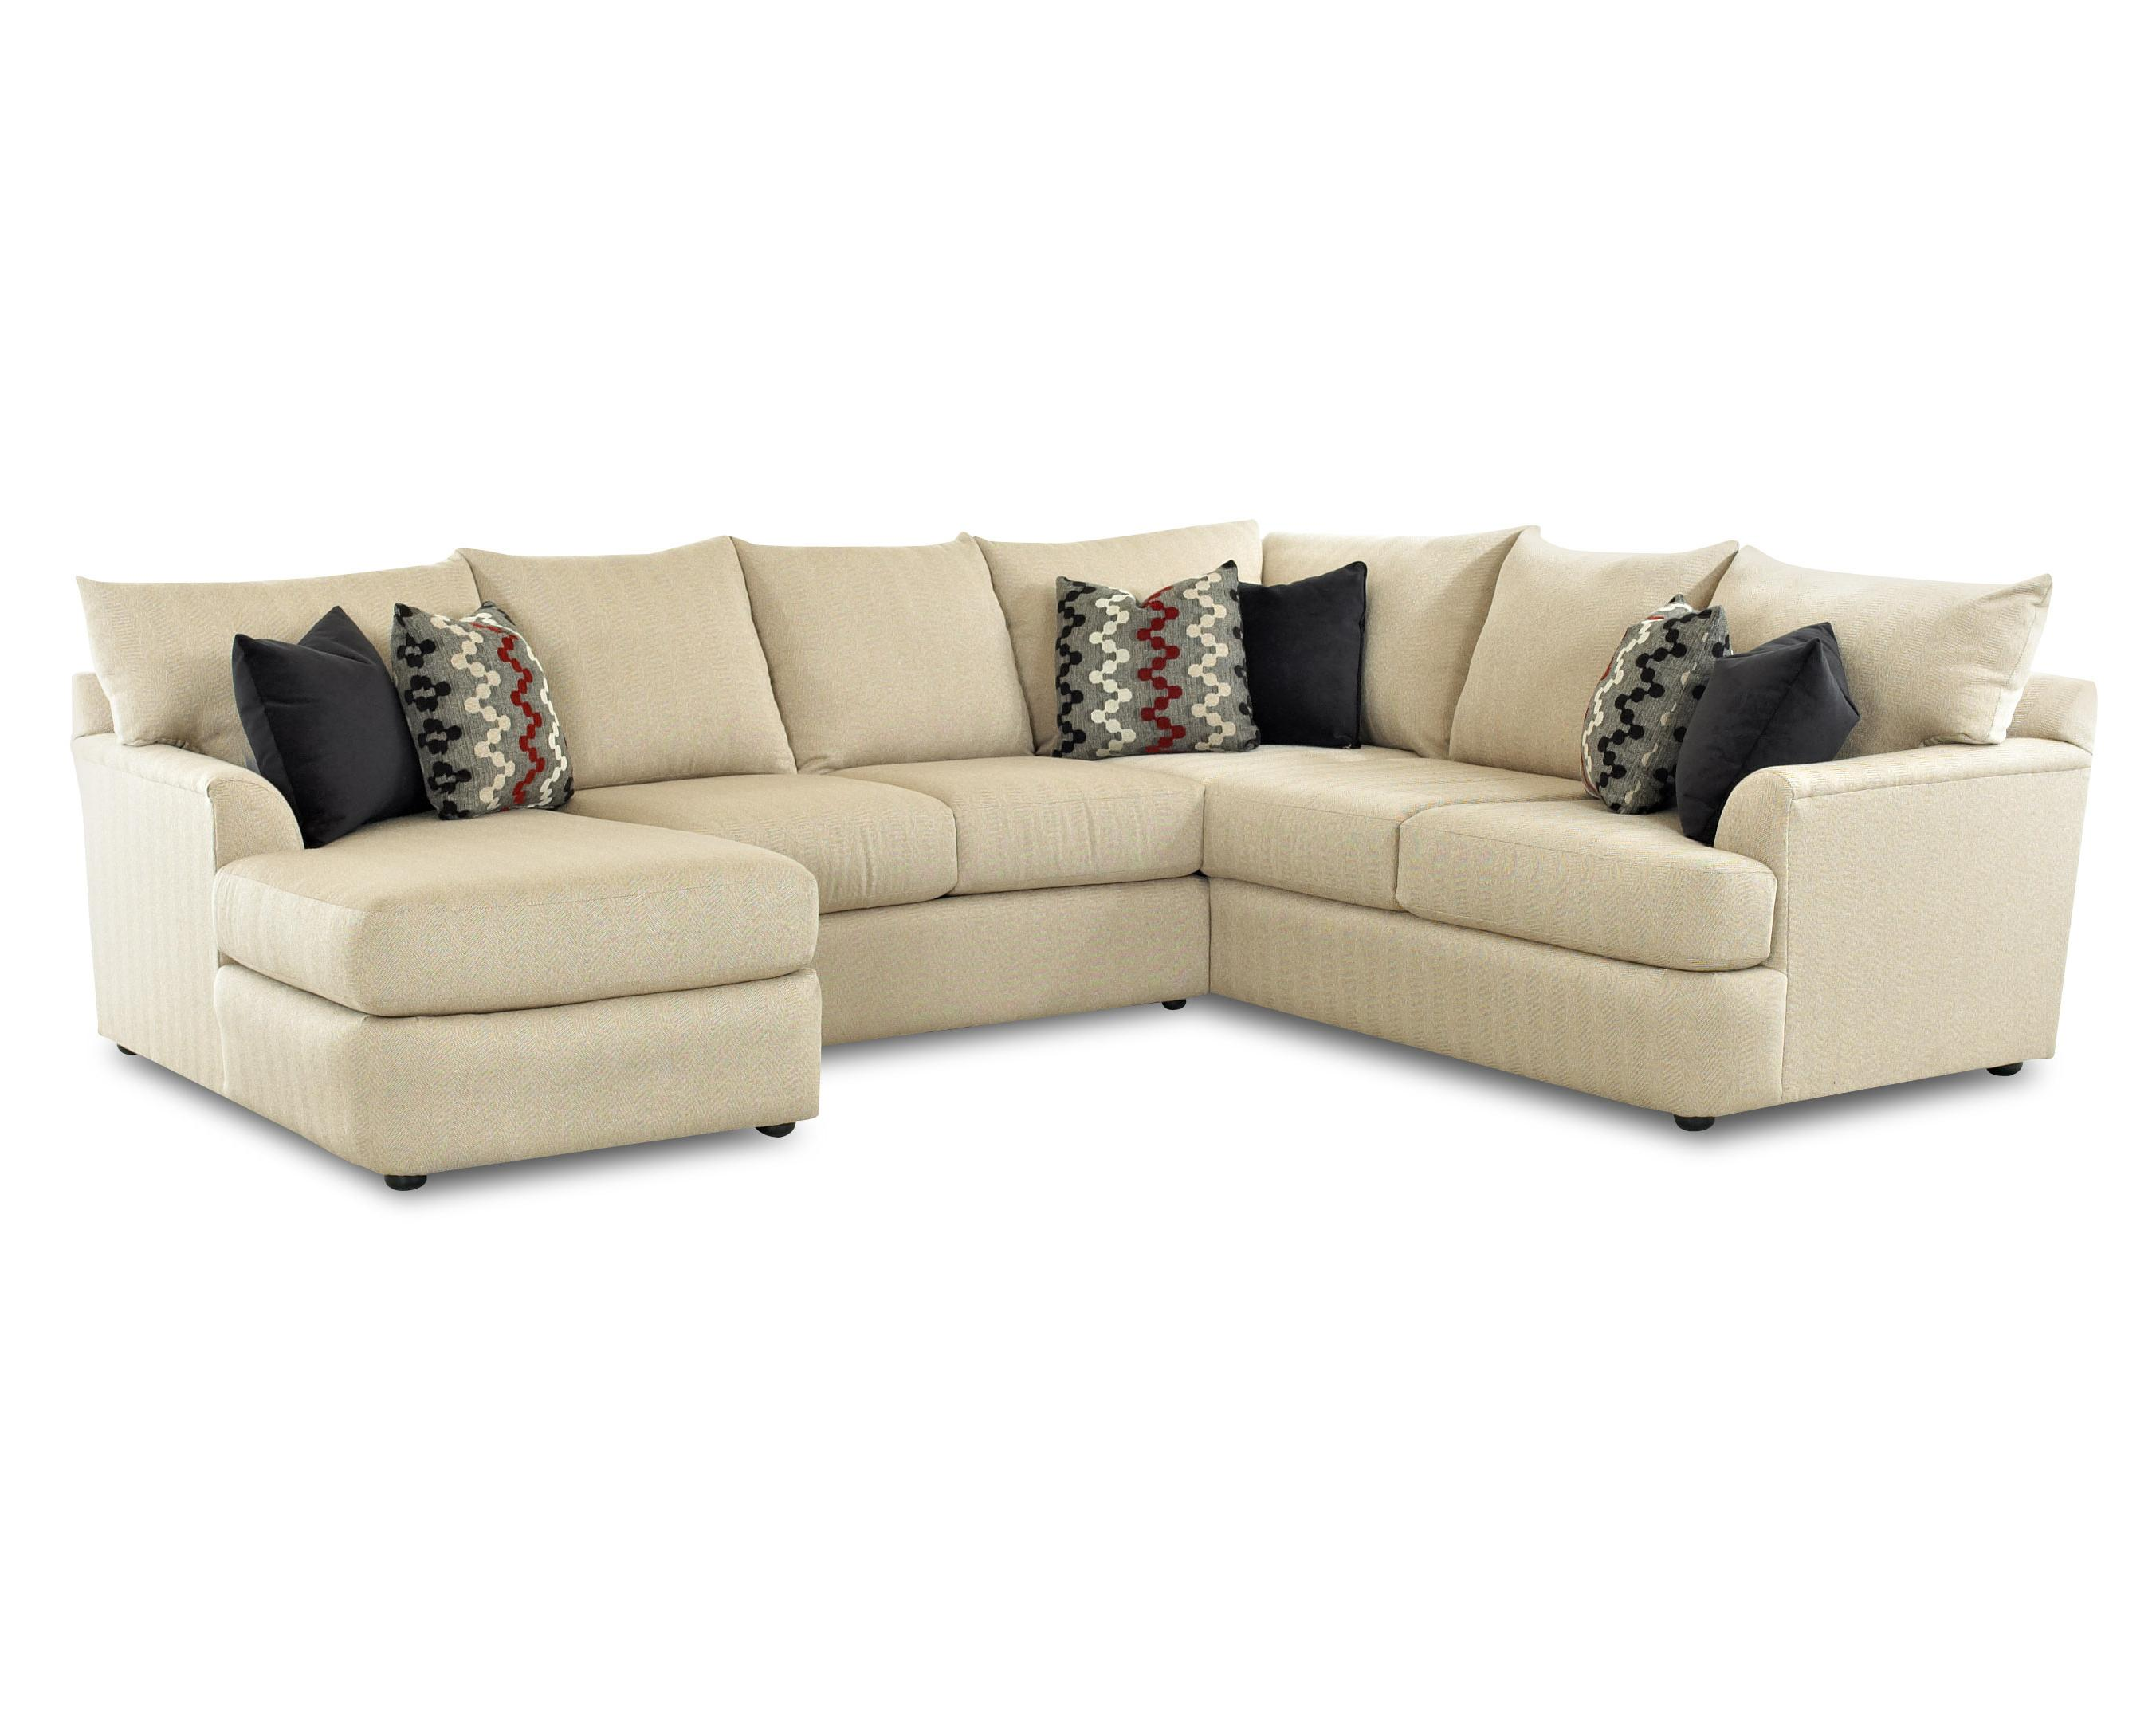 Findley Sectional Sofa by Klaussner at Northeast Factory Direct